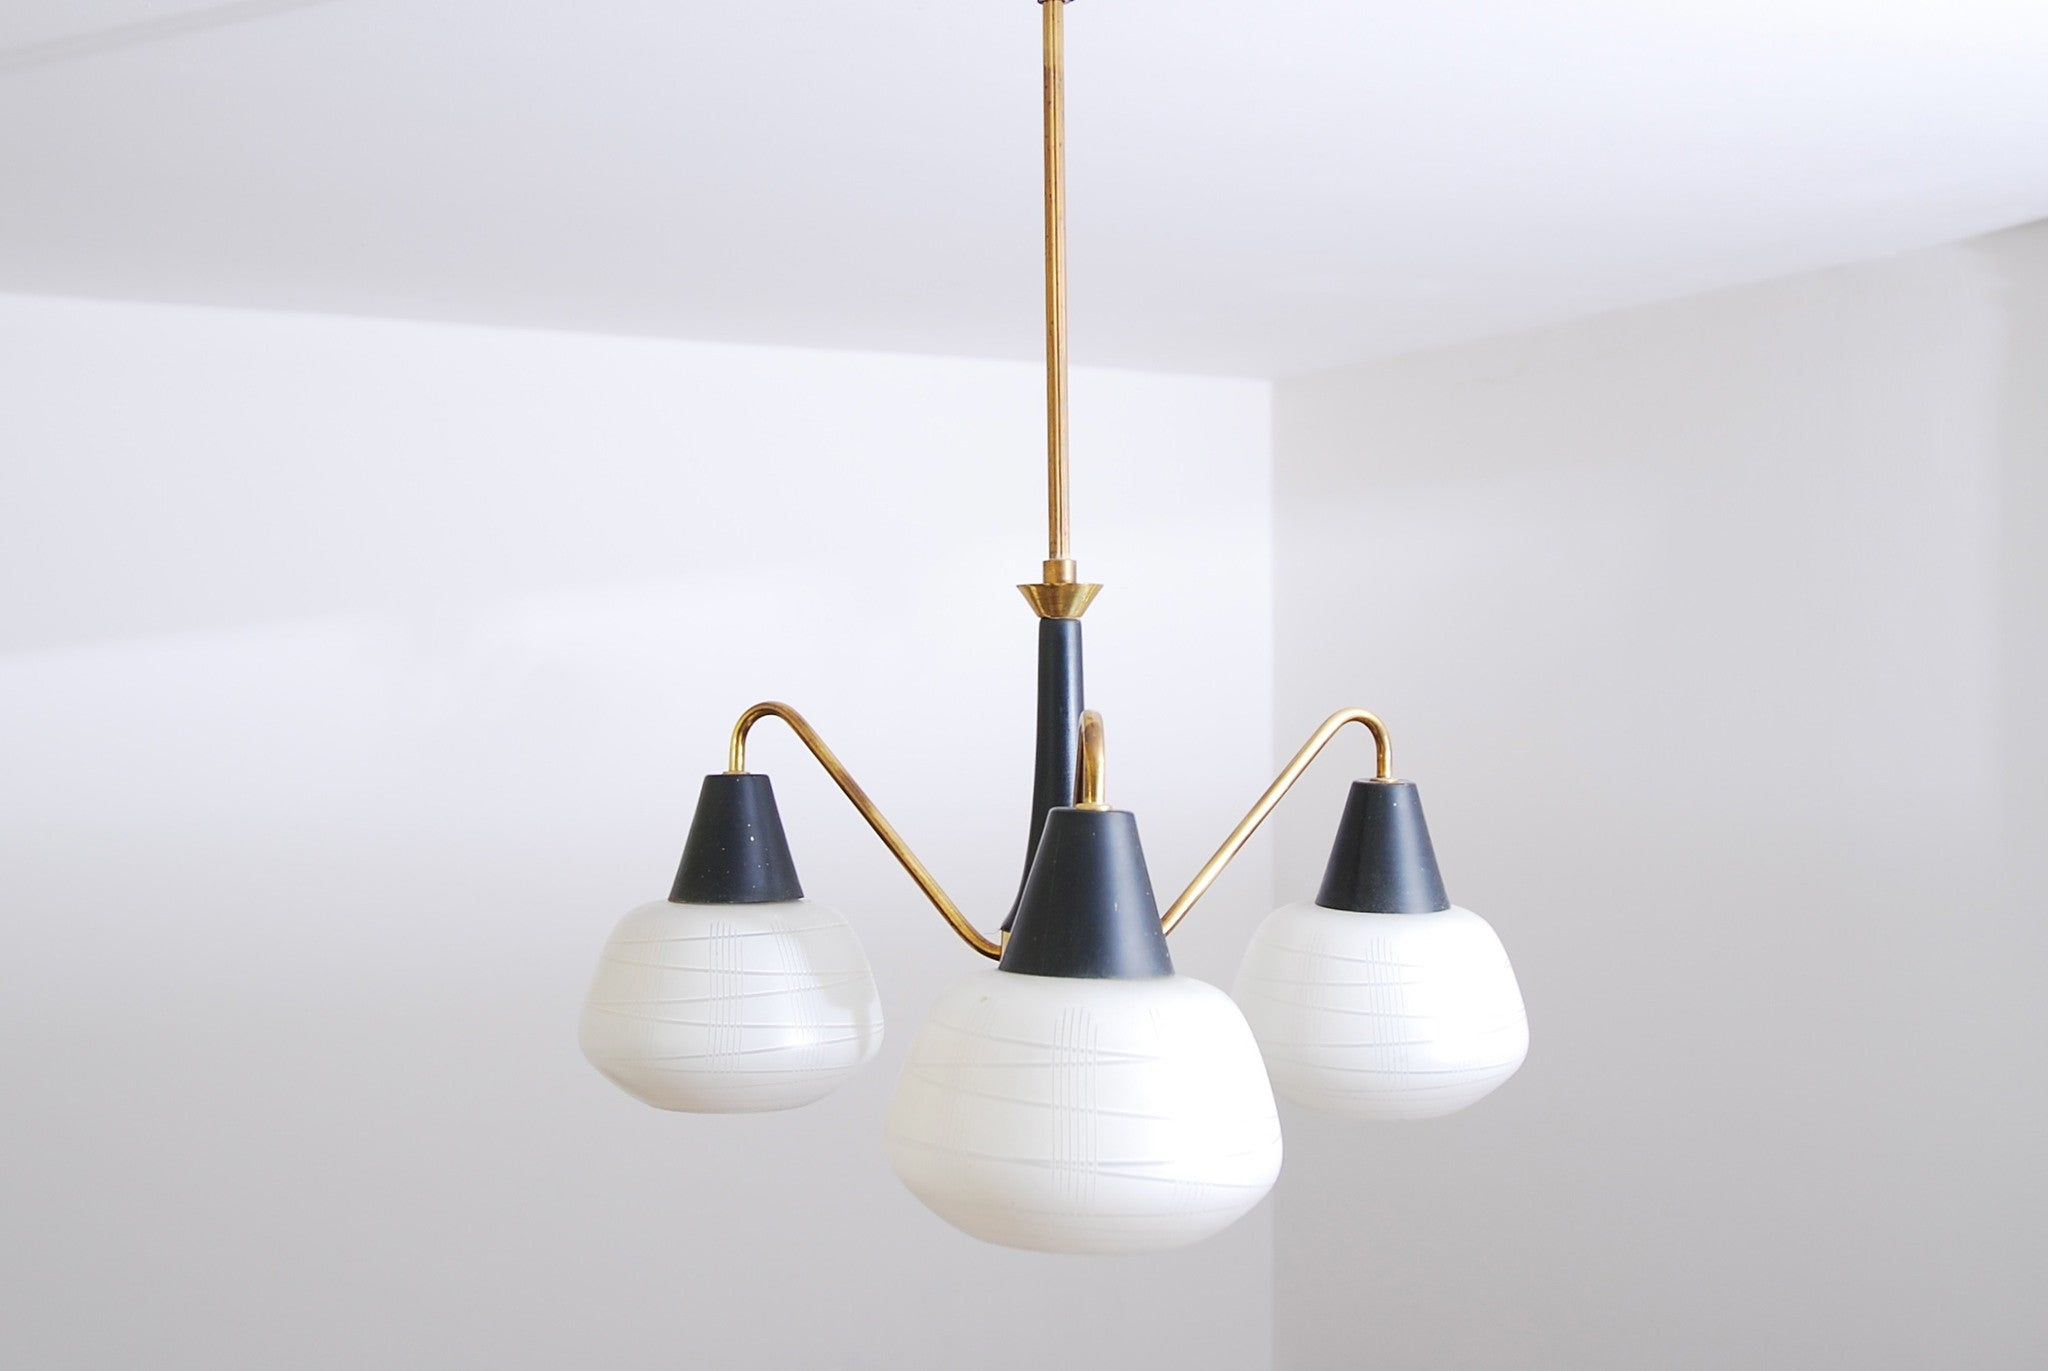 Three armed ceiling light